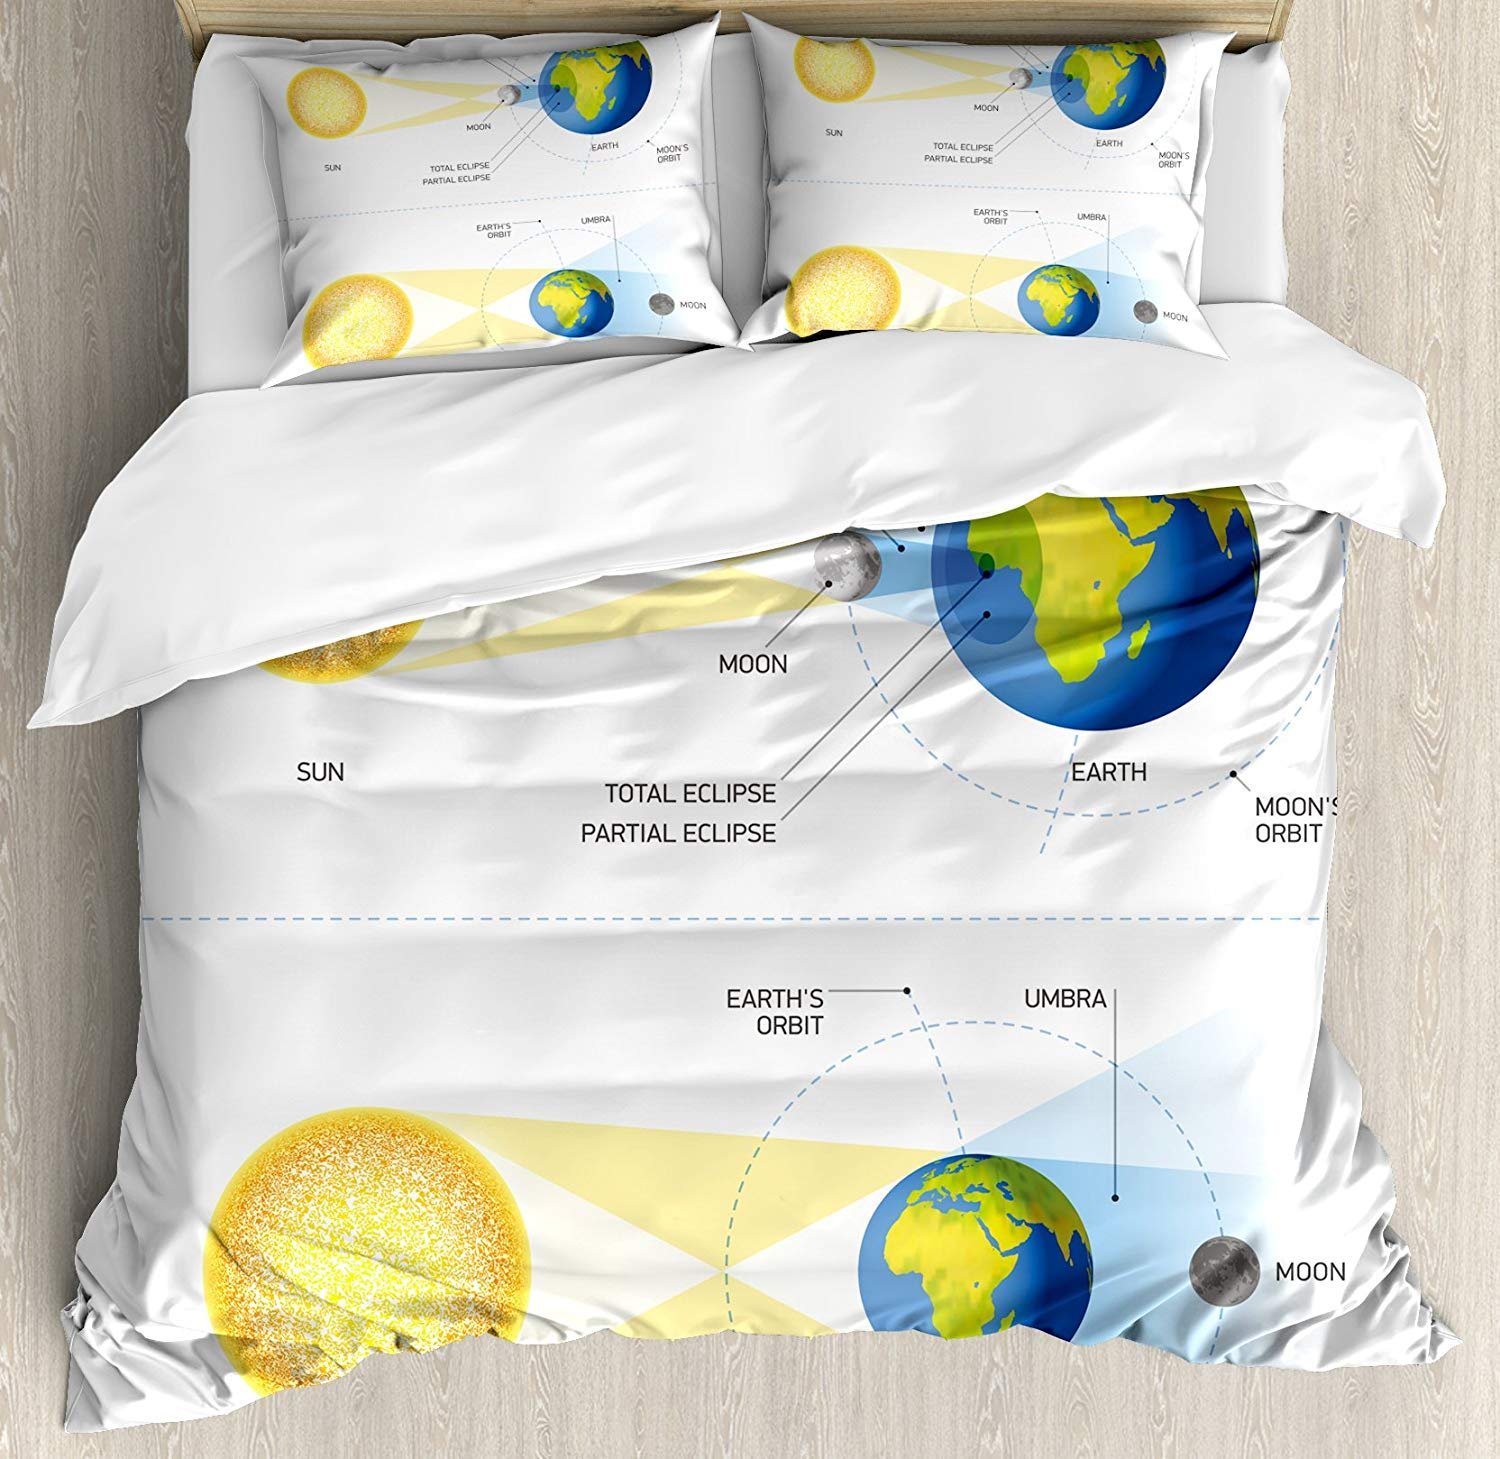 Twin Size Educational 3 PCS Duvet Cover Set, Solar and Lunar Eclipse Planet Earth Sun Moon Orbit Astronomy Science, Bedding Set Quilt Bedspread for Children/Teens/Adults/Kids, Blue Green Mustard